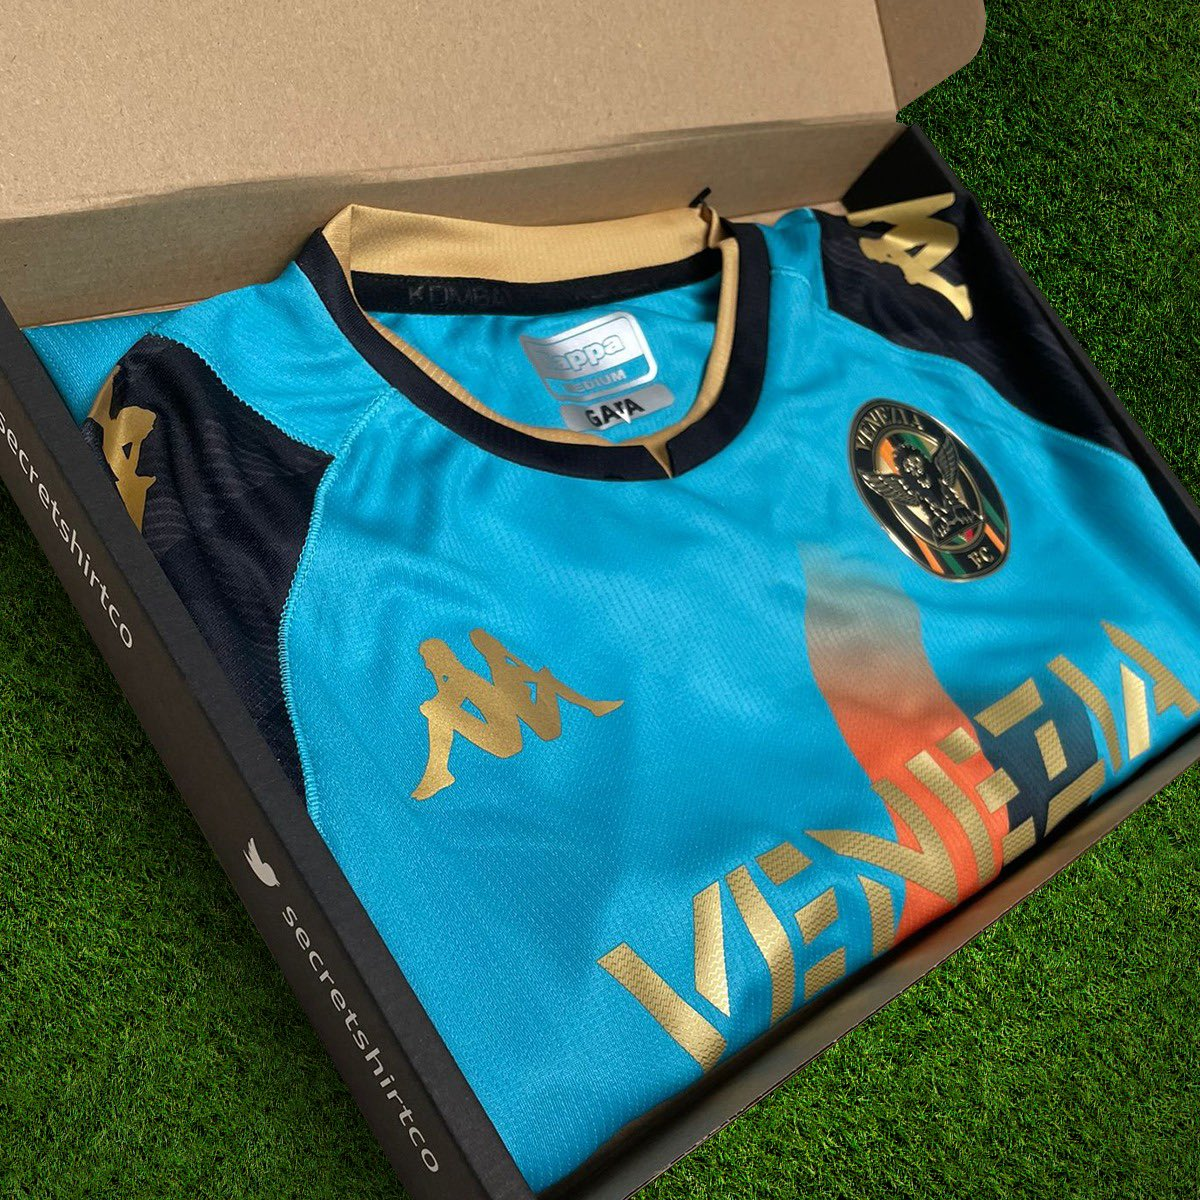 Venezia kits hit different. 💧 We've got a few going out with today's orders. 🇮🇹 Get your Secret Shirt here 👇 SecretShirt.co